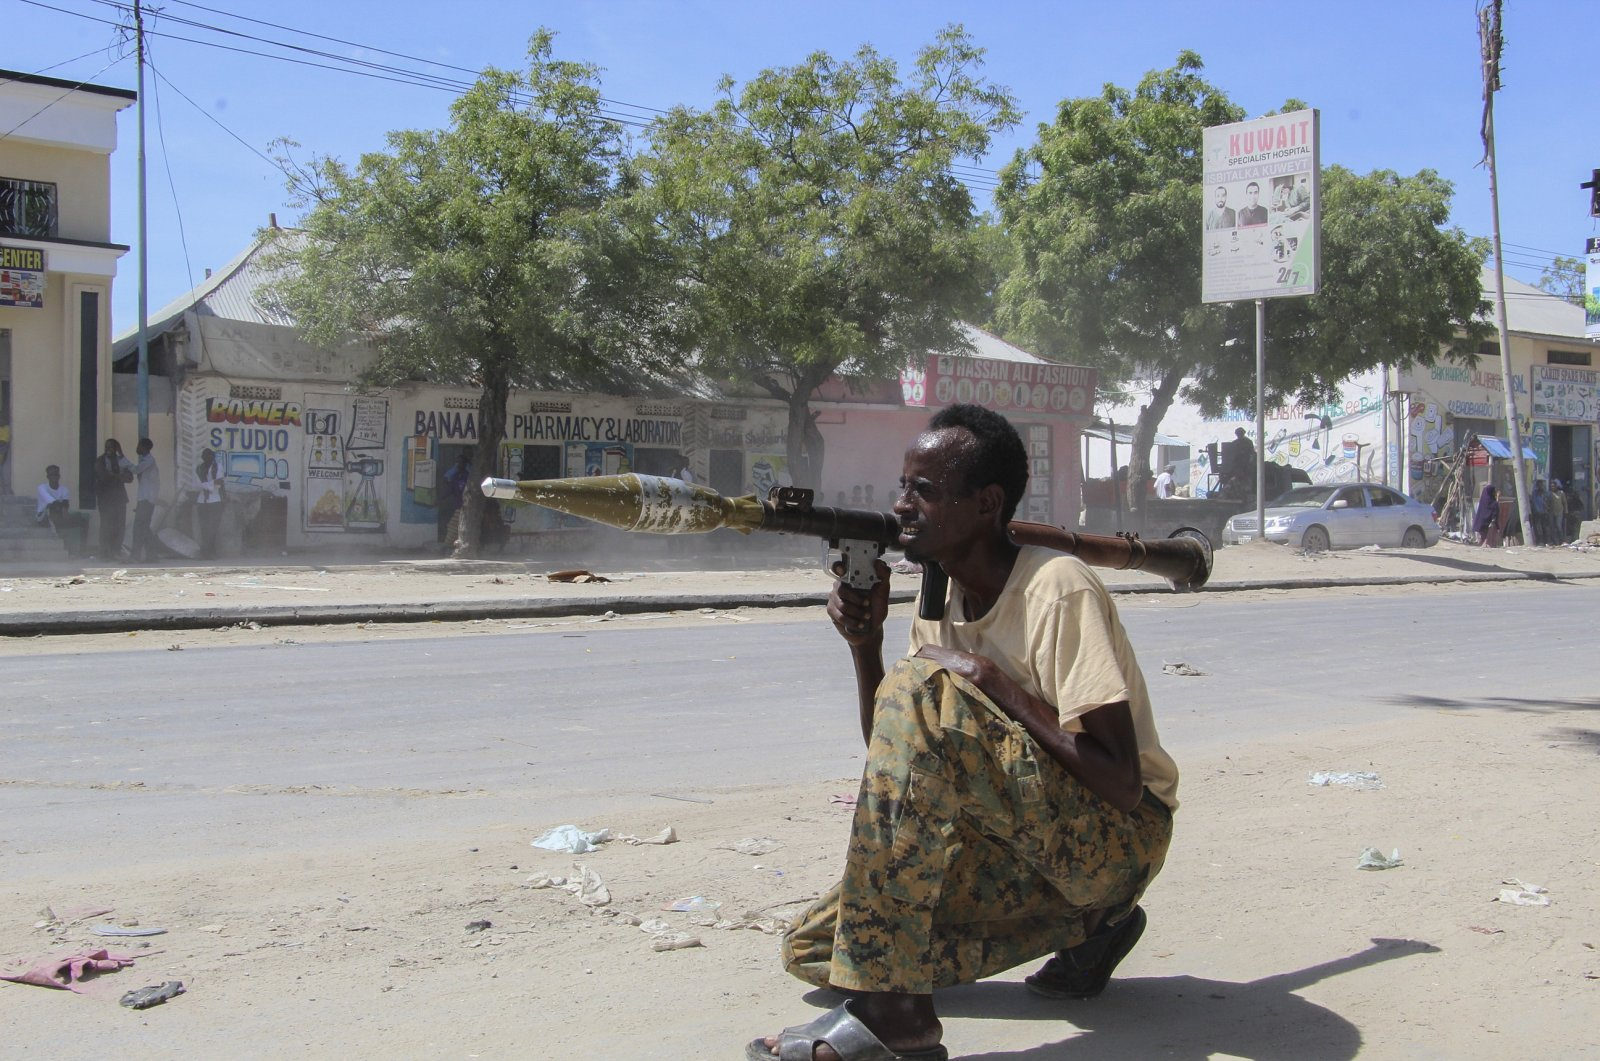 A Somali soldier loyal to commander Saney Abdulle, a break-away military faction, points a rocket-propelled grenade (RPG) on the streets of Fagah in northern Mogadishu, Somalia, April 25, 2021. (EPA Photo)